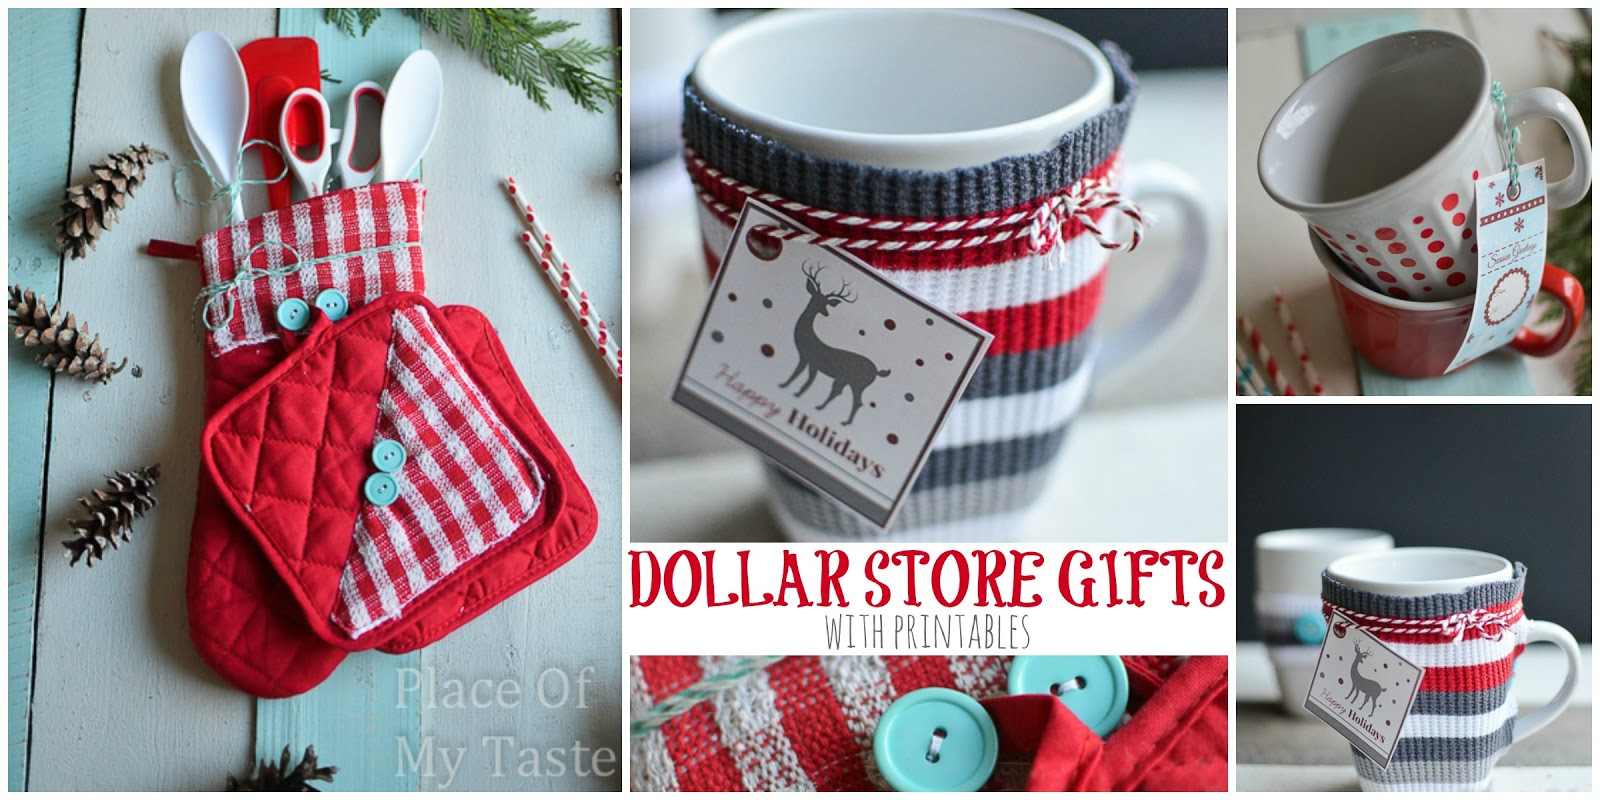 Well-known 3 LAST MINUTE HANDMADE GIFTS FROM $1 STORE - PLACE OF MY TASTE DY39